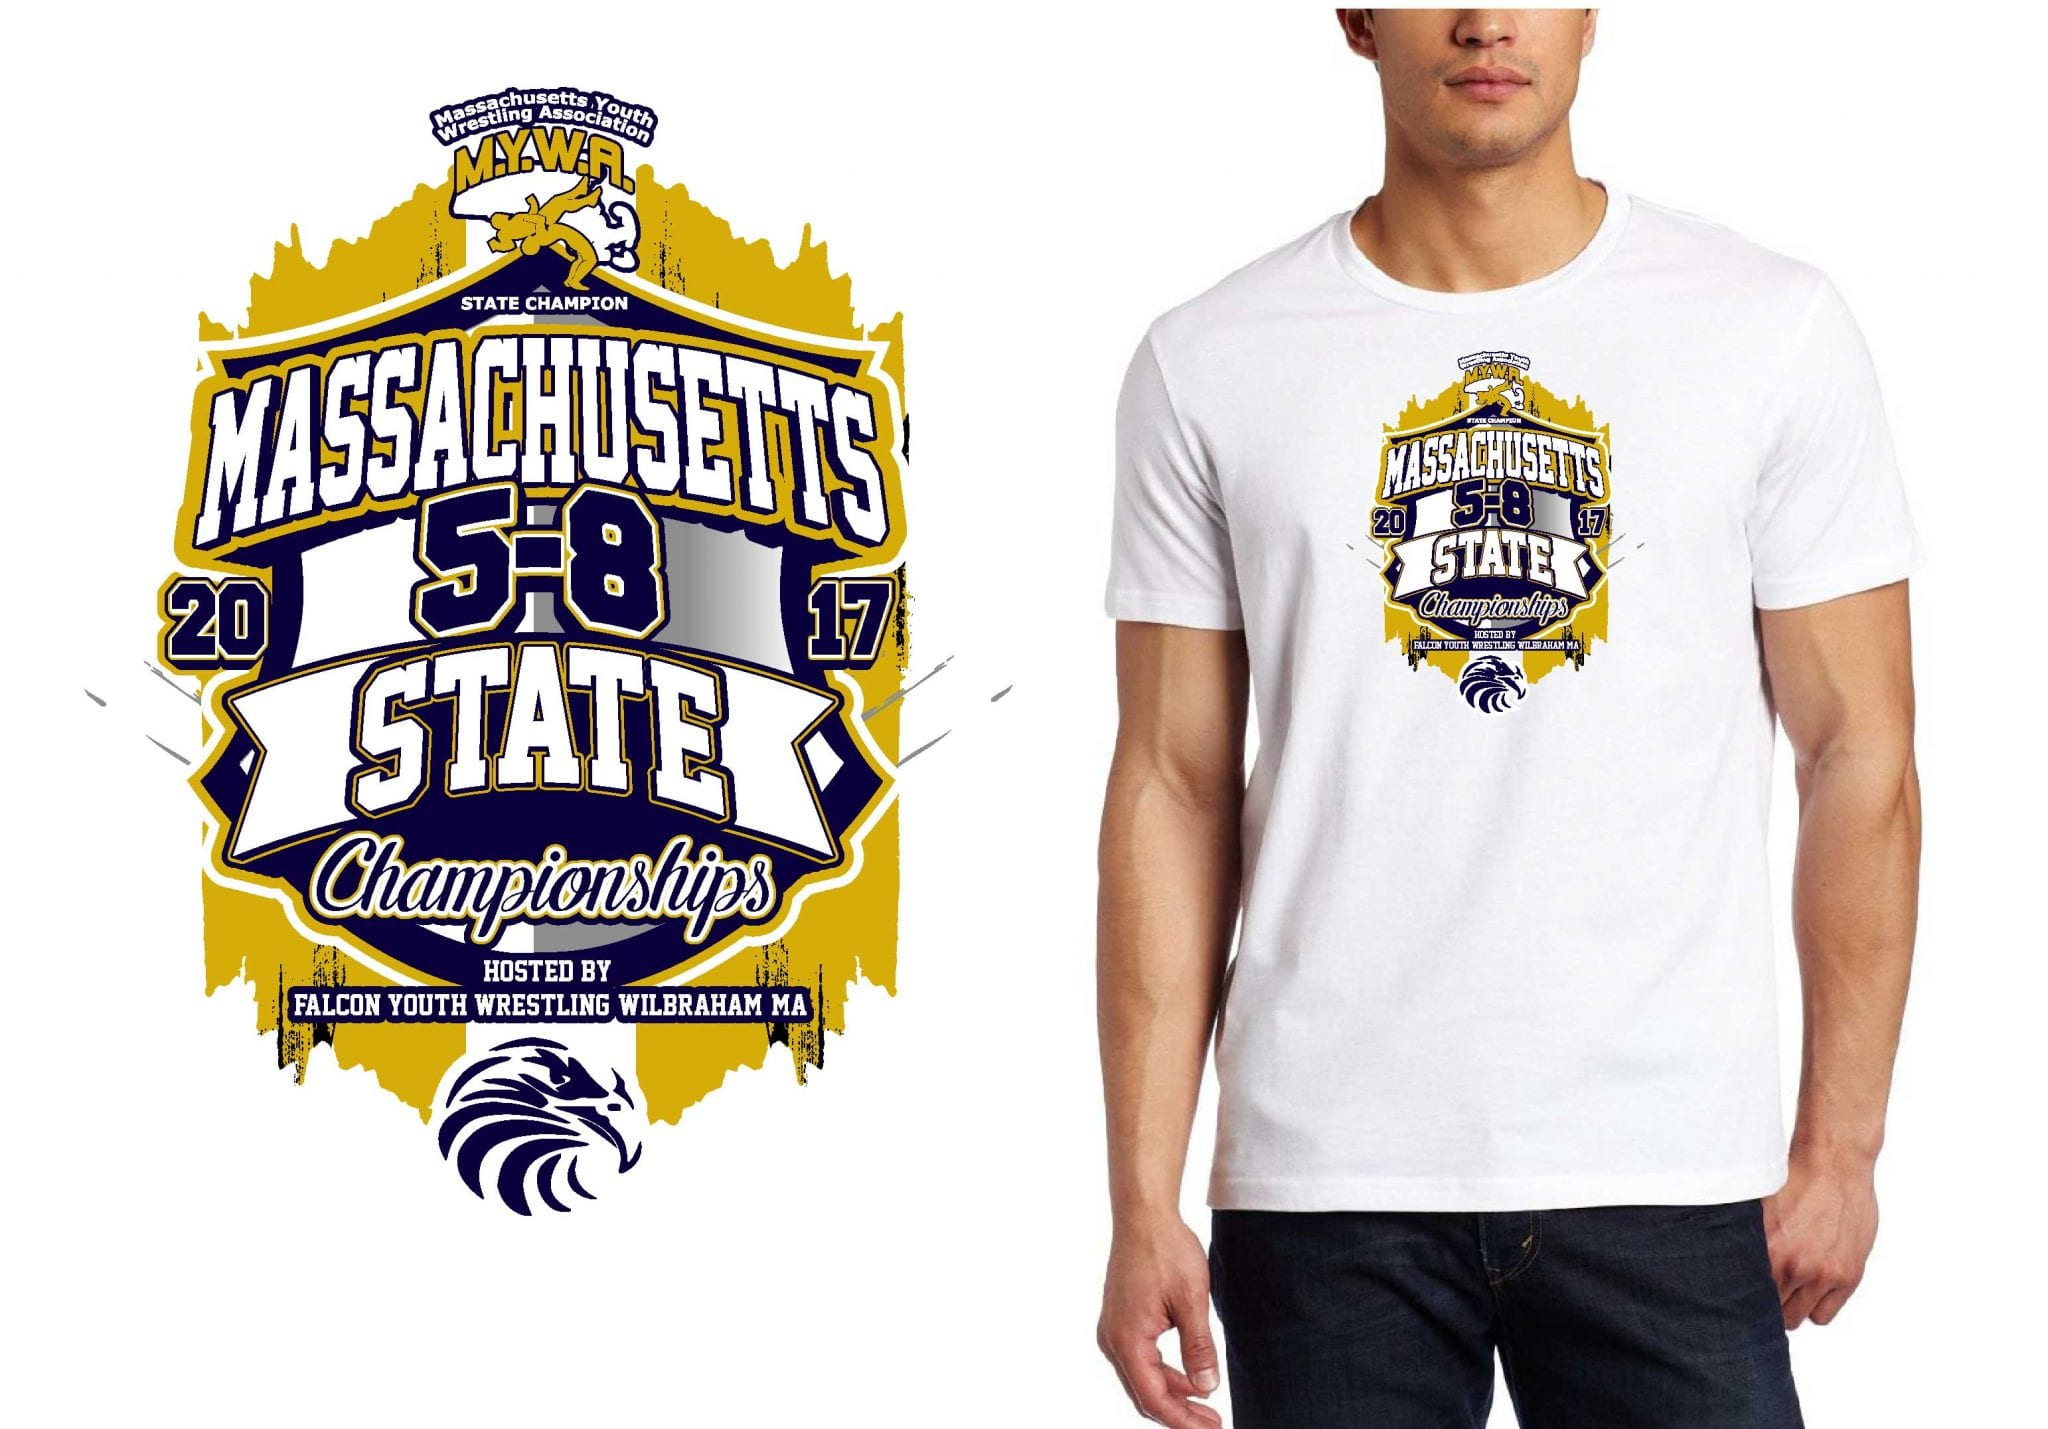 WRESTLING T SHIRT LOGO DESIGN Youth-State-Championship BY UrArtStudio